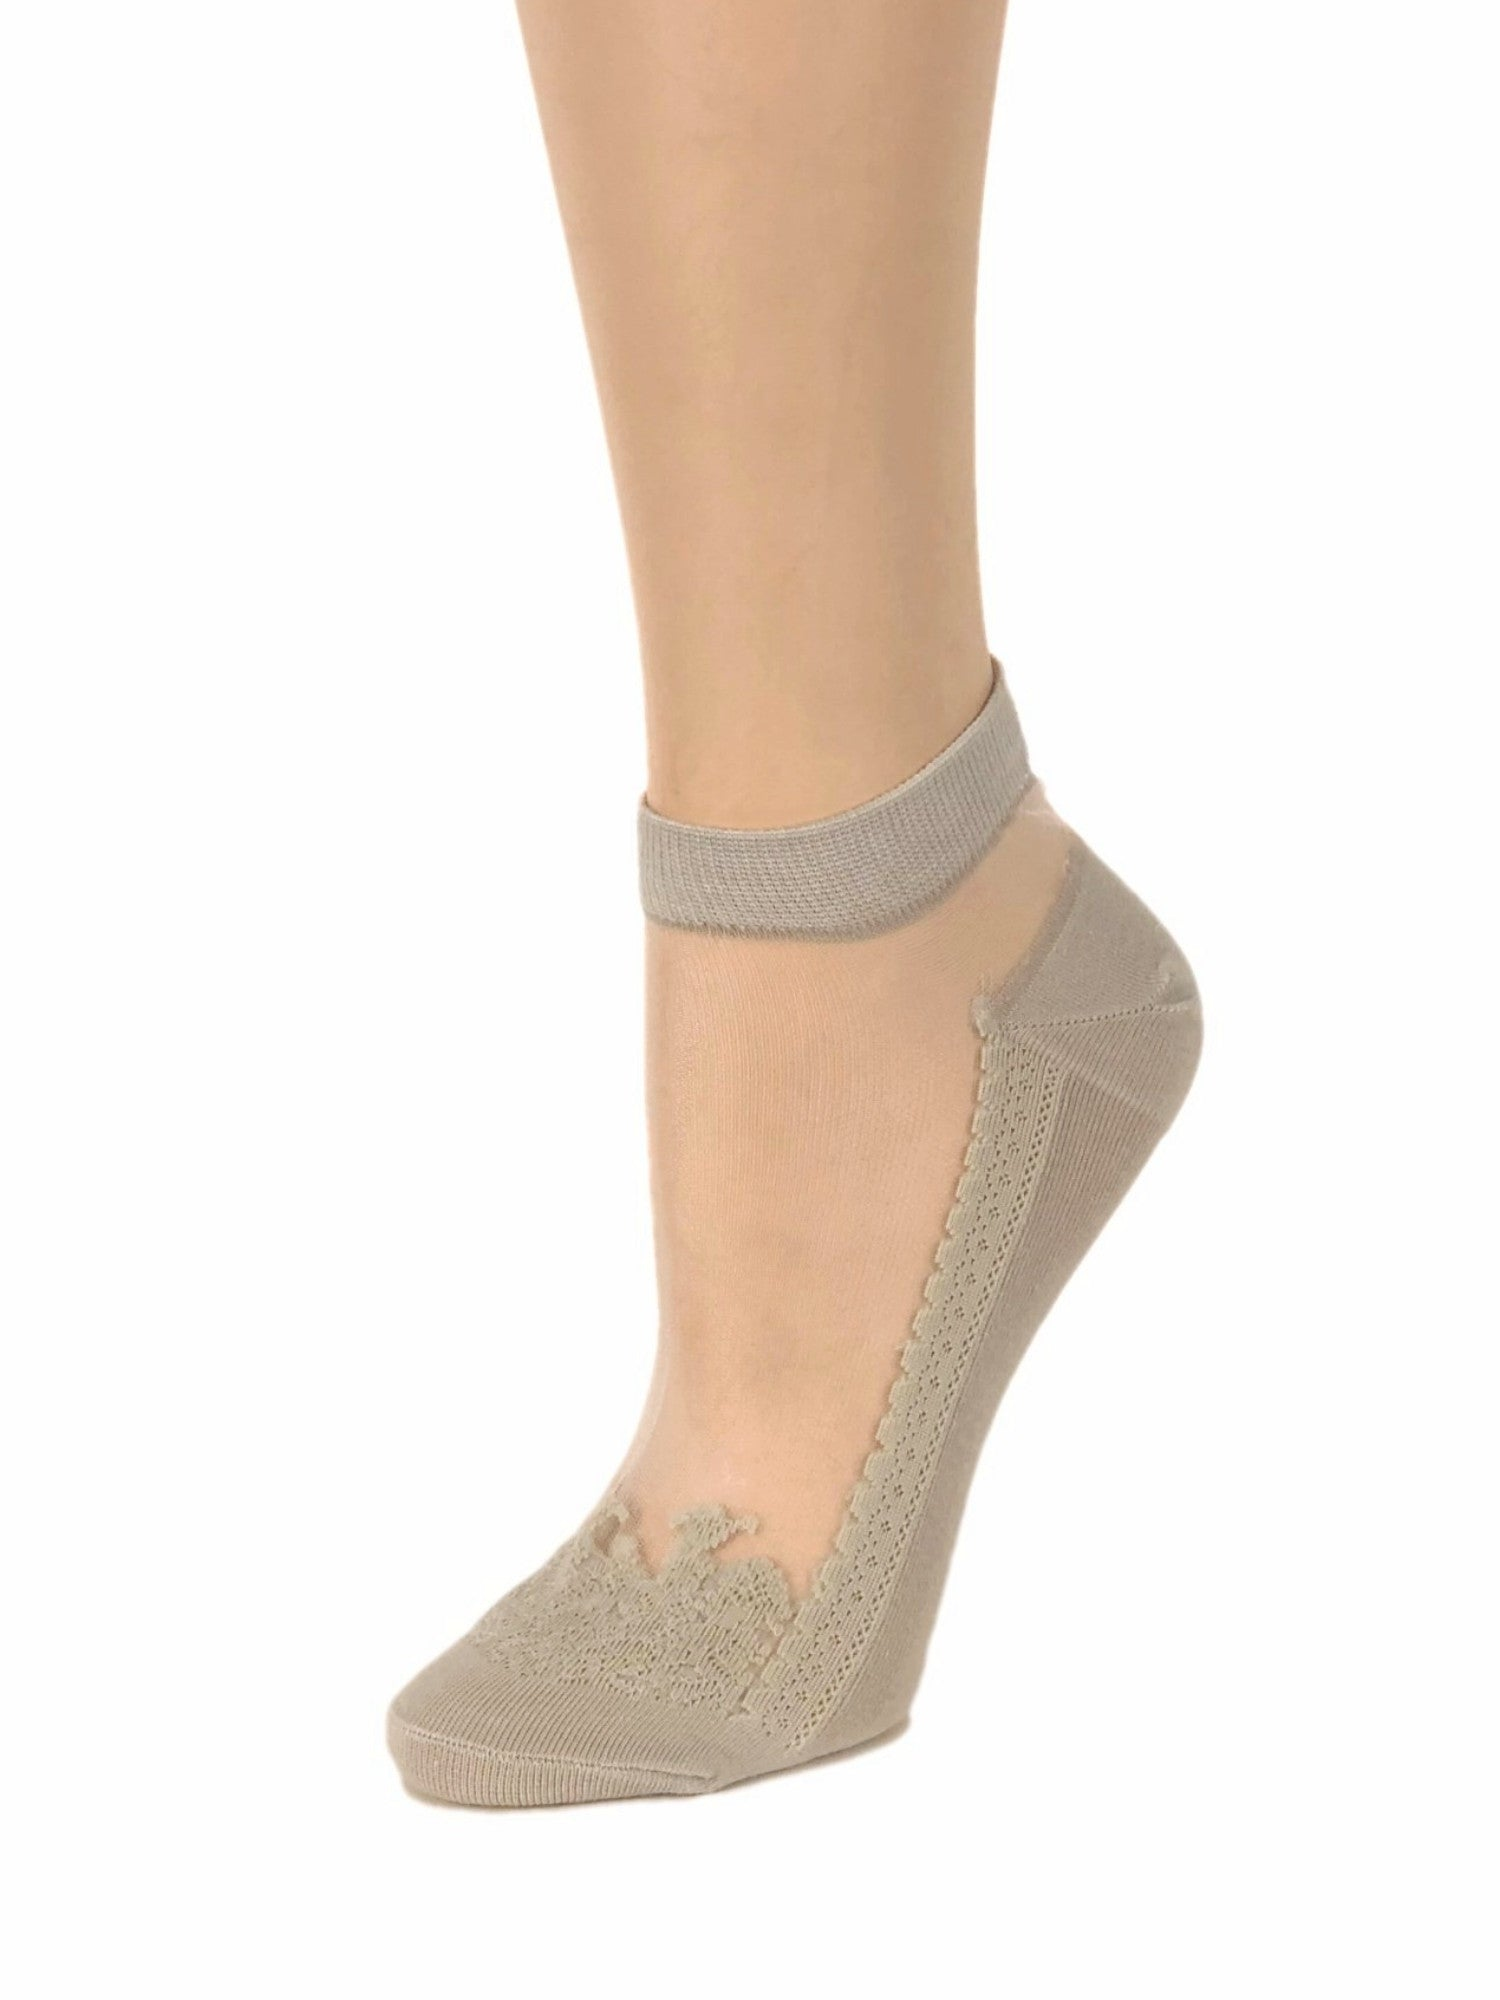 Light Skin Ankle Sheer Socks - Global Trendz Fashion®